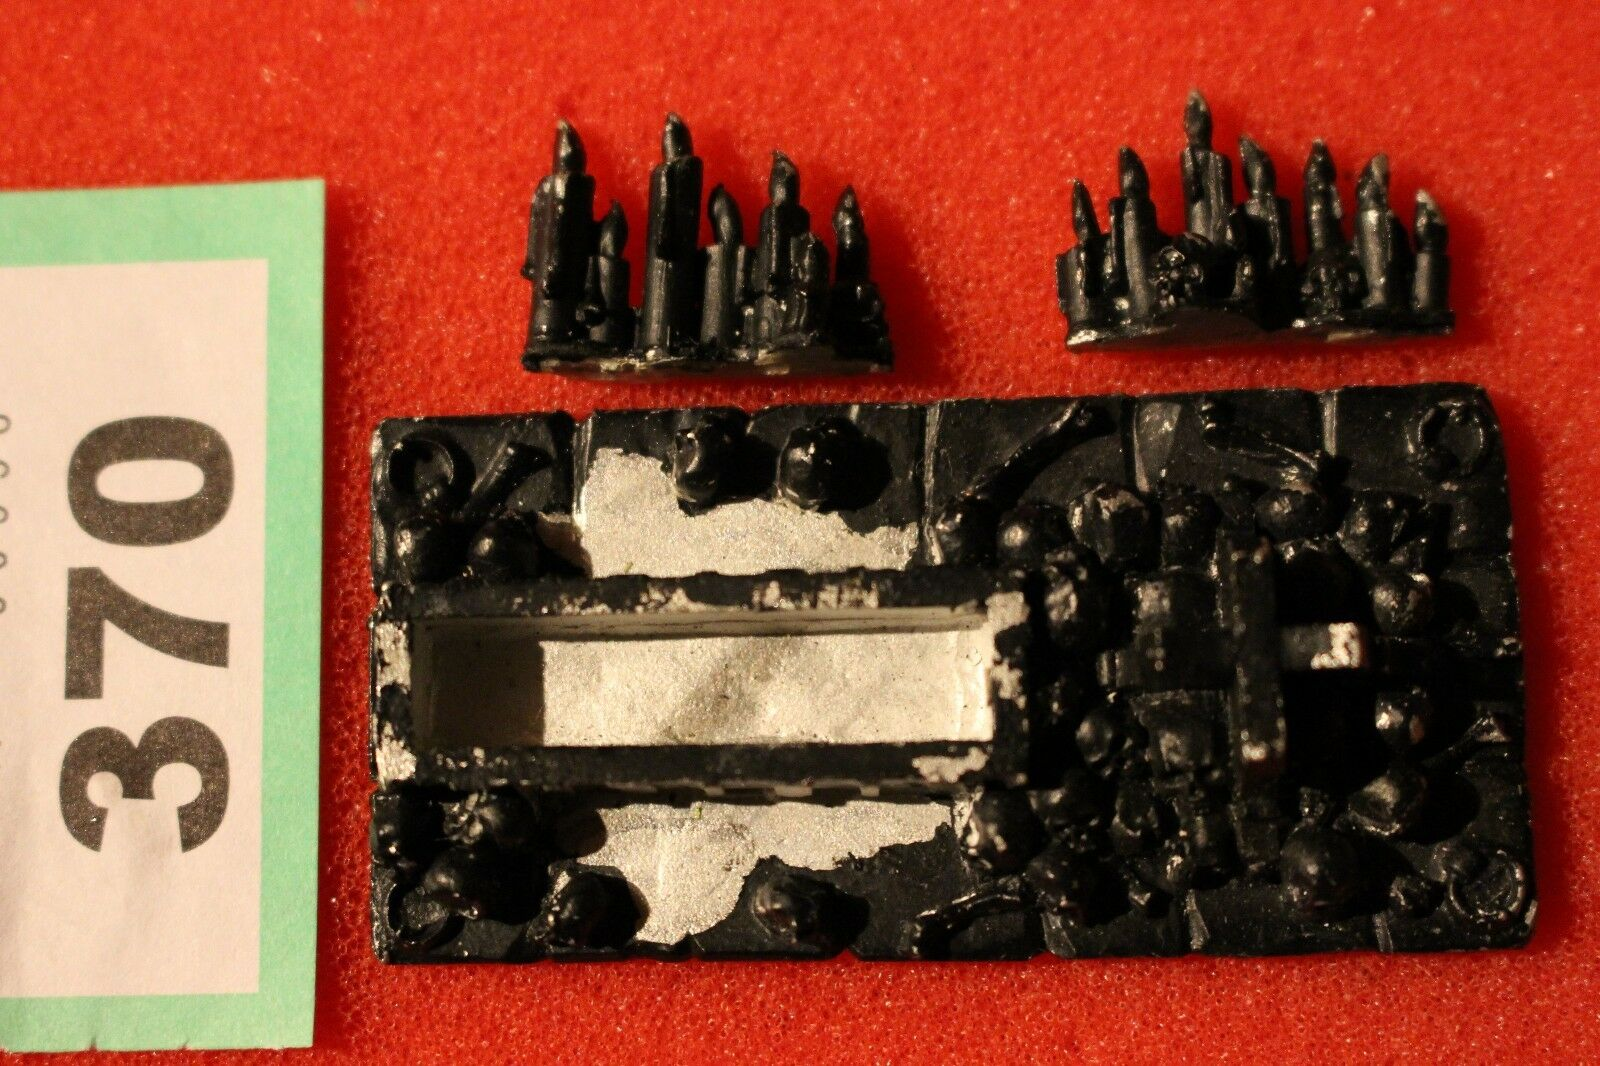 Games Workshop Warhammer Undead Chaos Scenery Sacrificial Altar Graveyard Metal